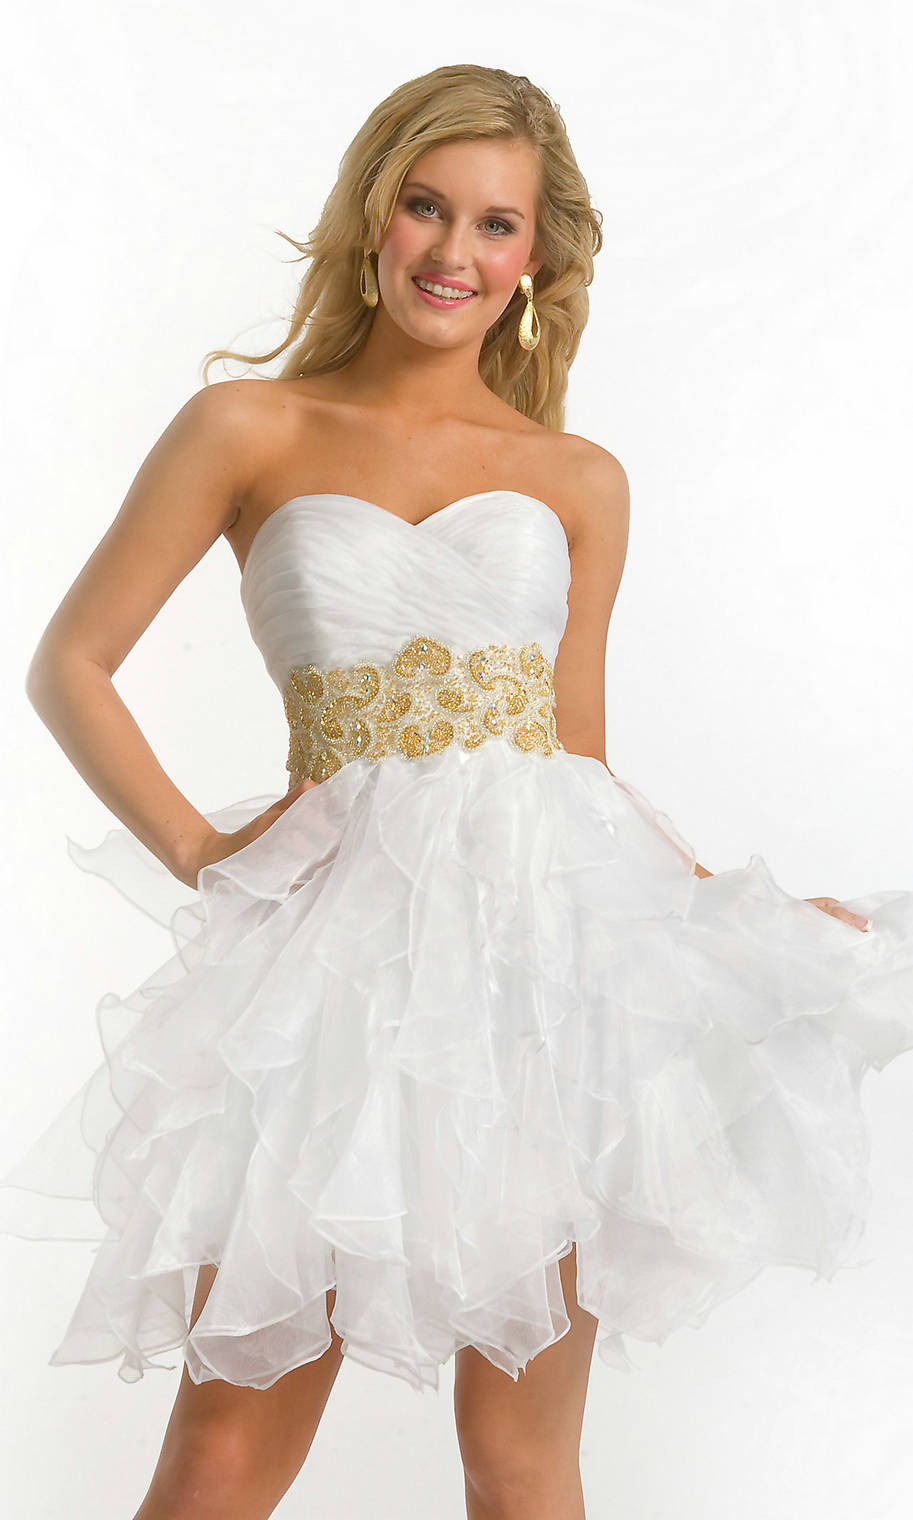 dress - White Short prom dresses pictures video